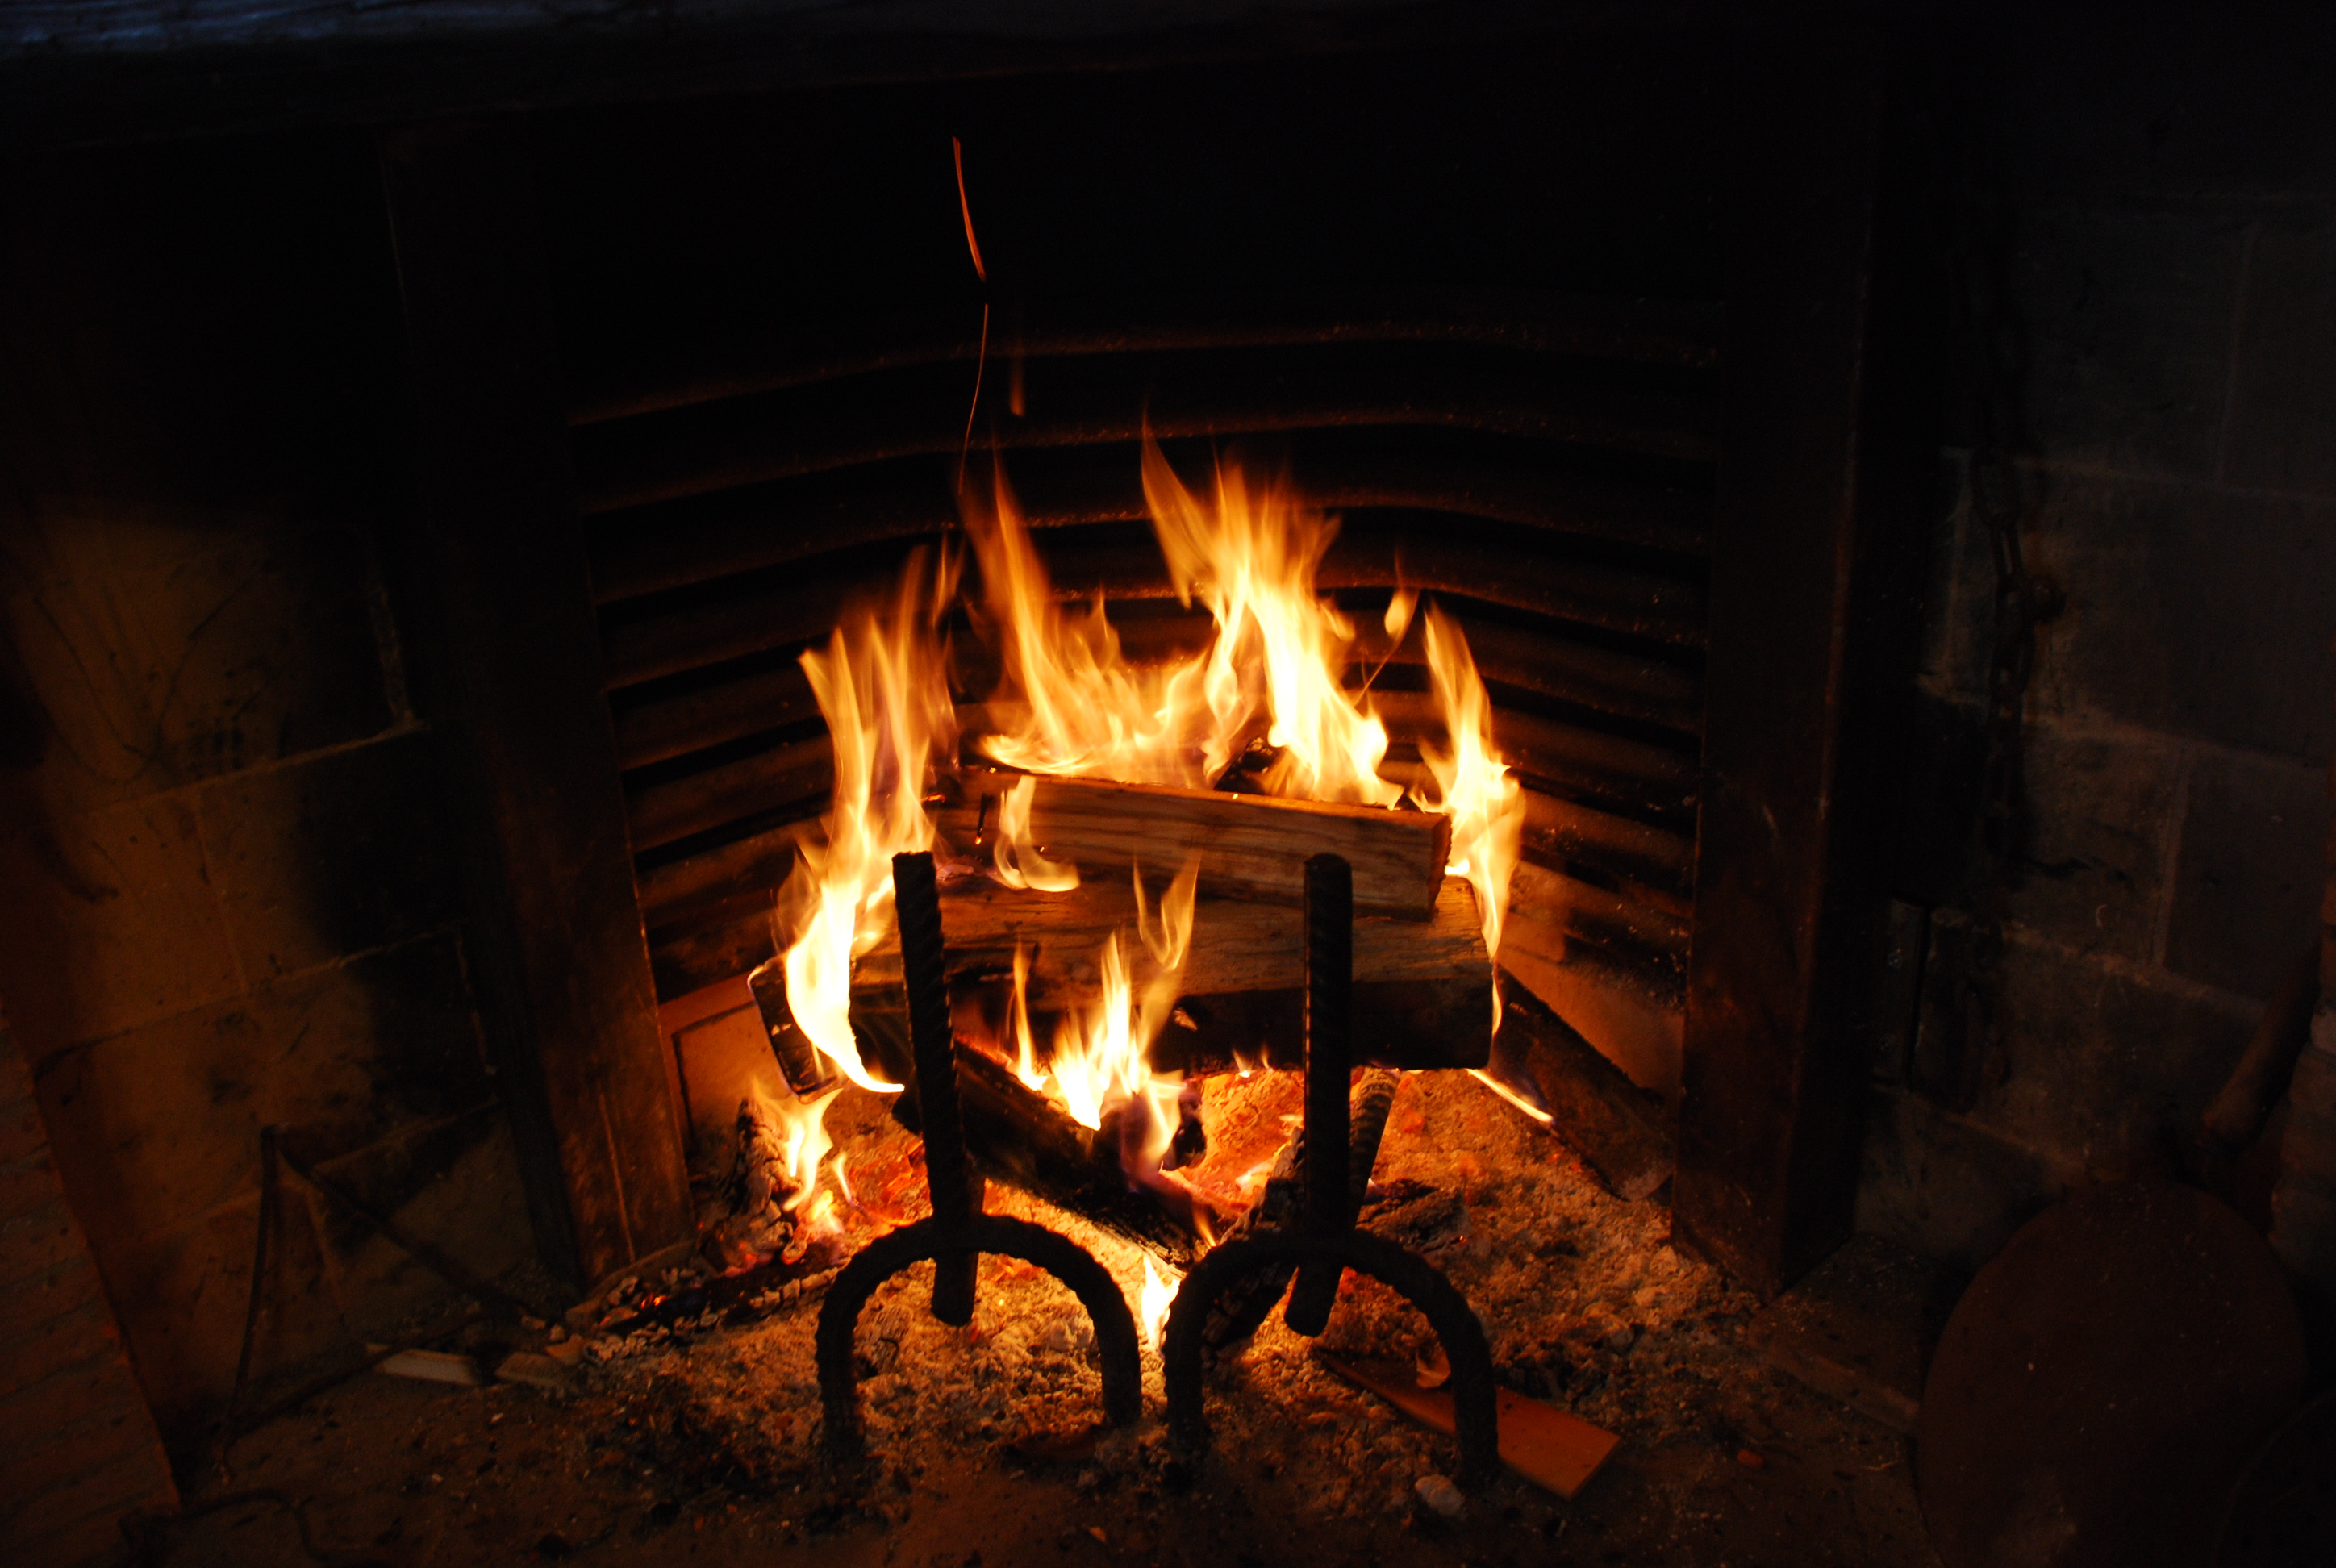 Fire In Fireplace By SilvieT